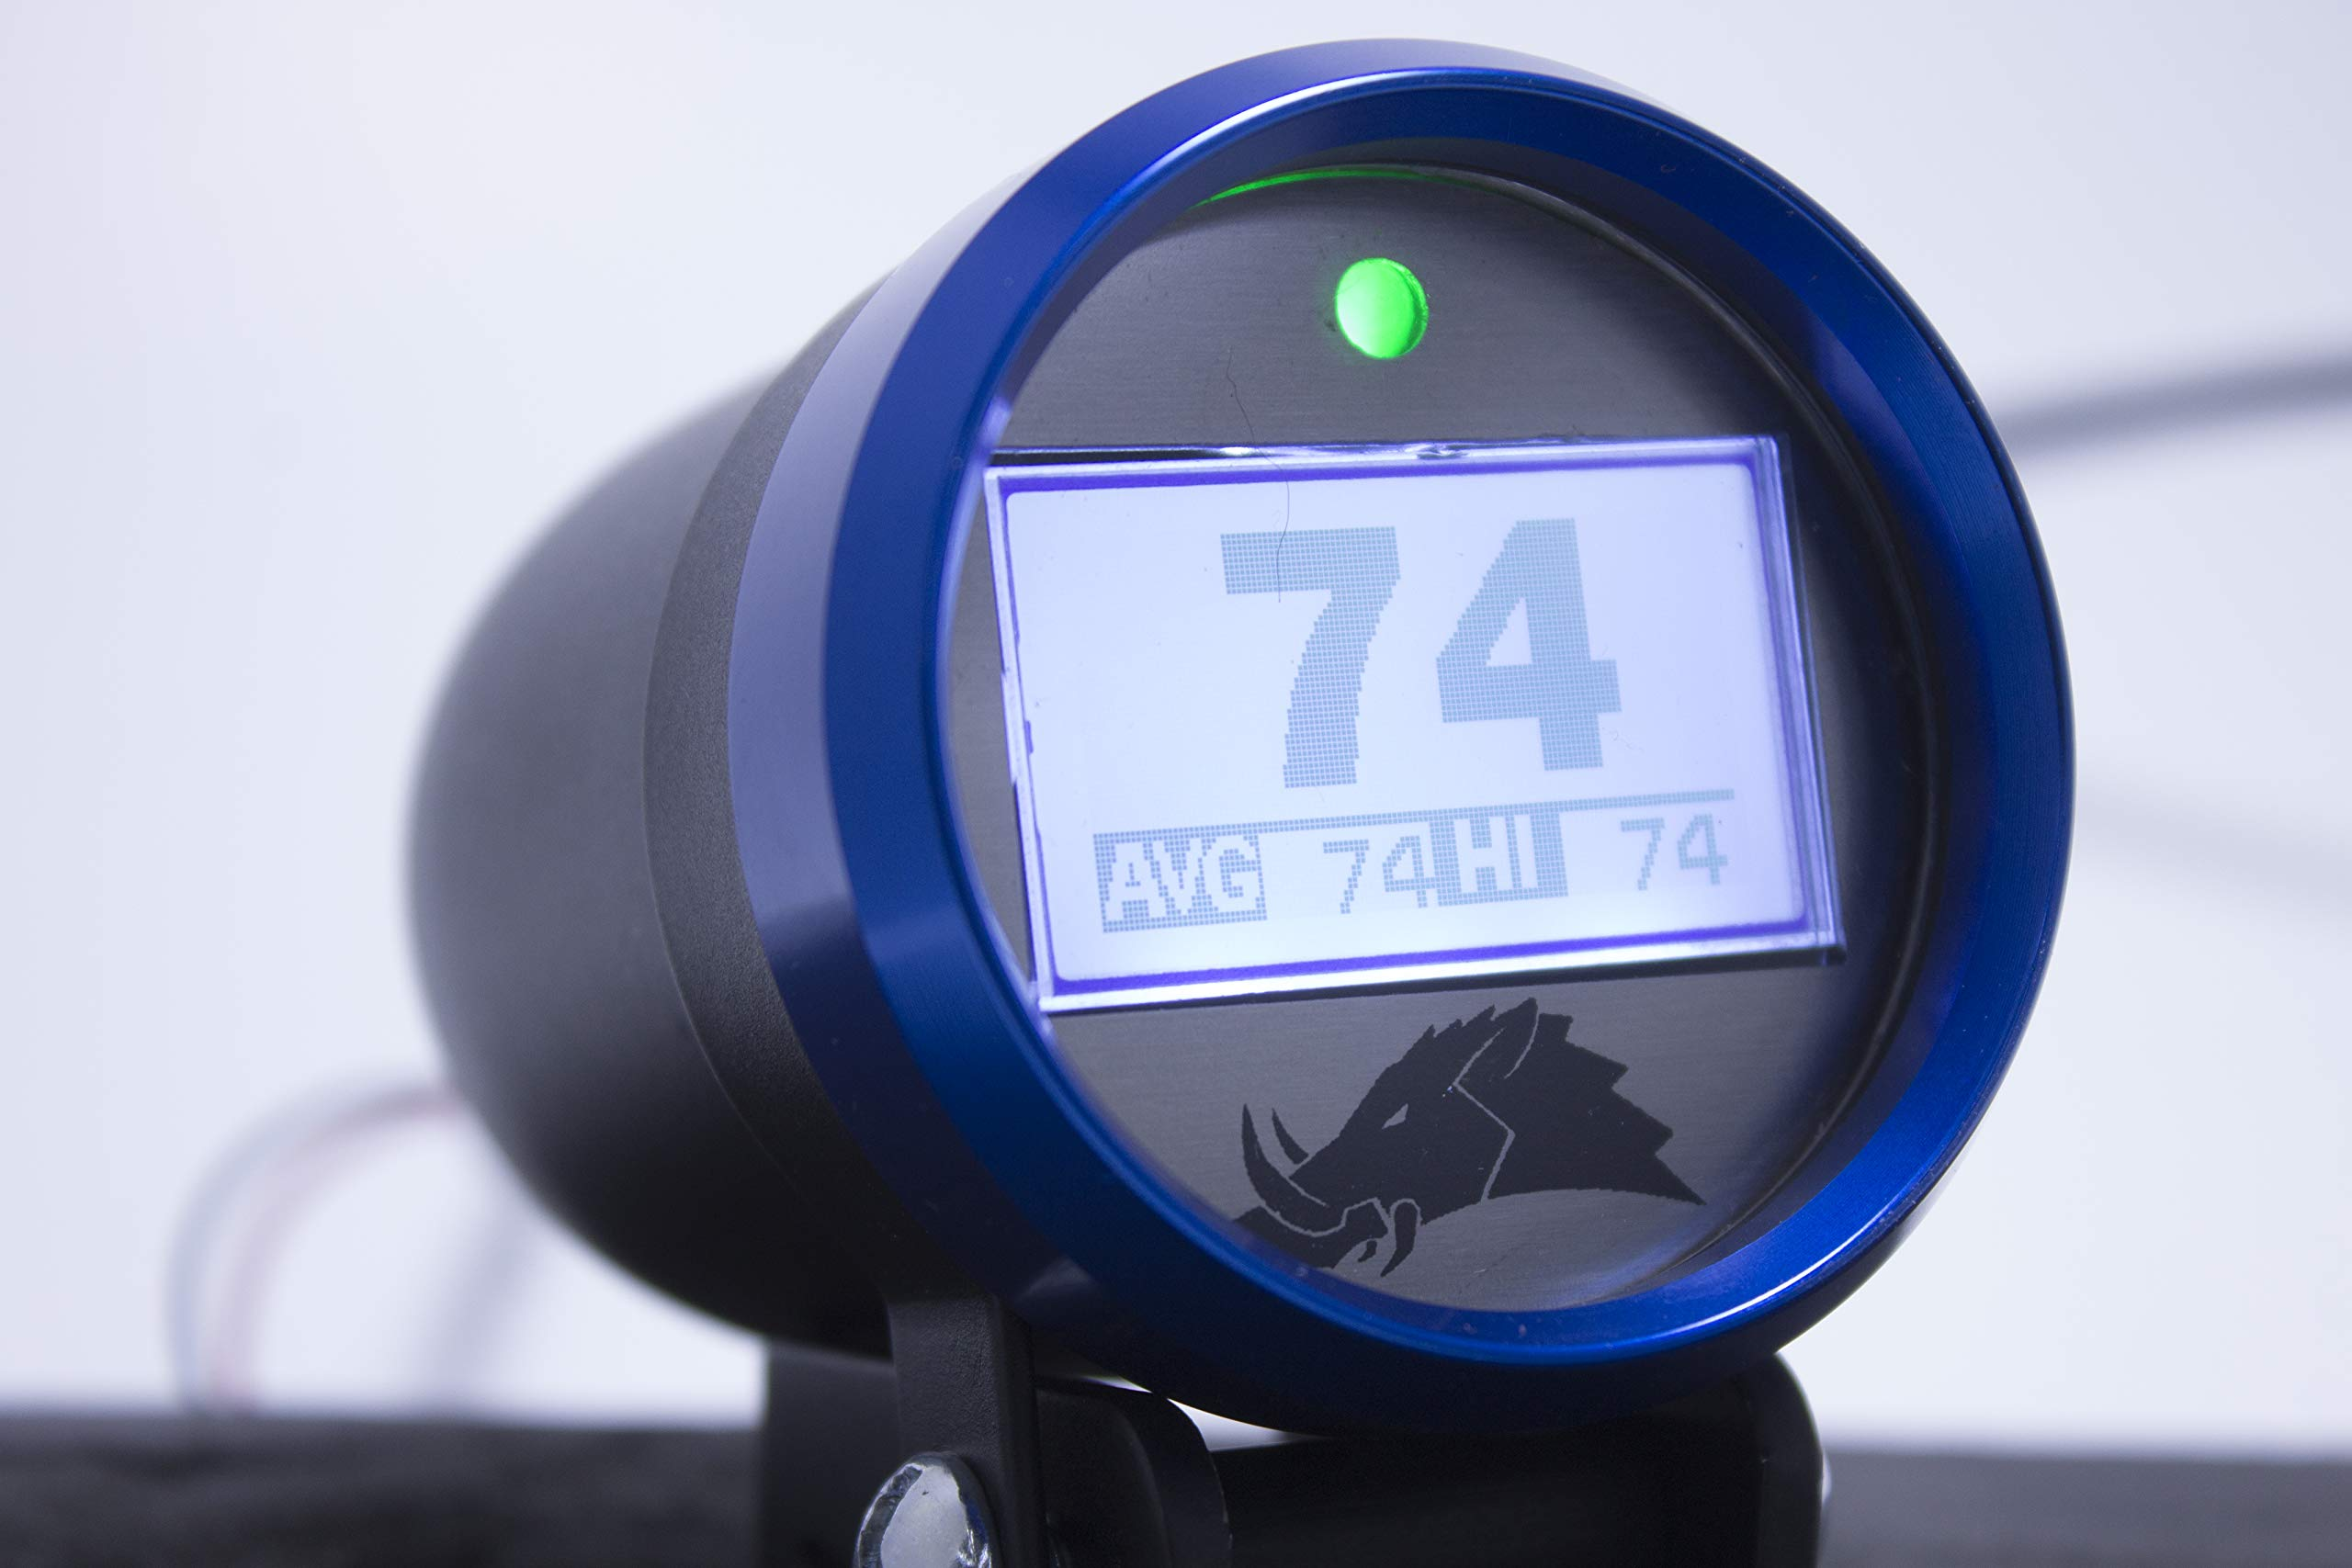 Belt Temperature Gauge w/Infrared Sensor (for UTVs and Snowmobiles) - 3.0 Edition (Polaris RZR 2-Seater, Blue) by Razorback Technology (Image #1)